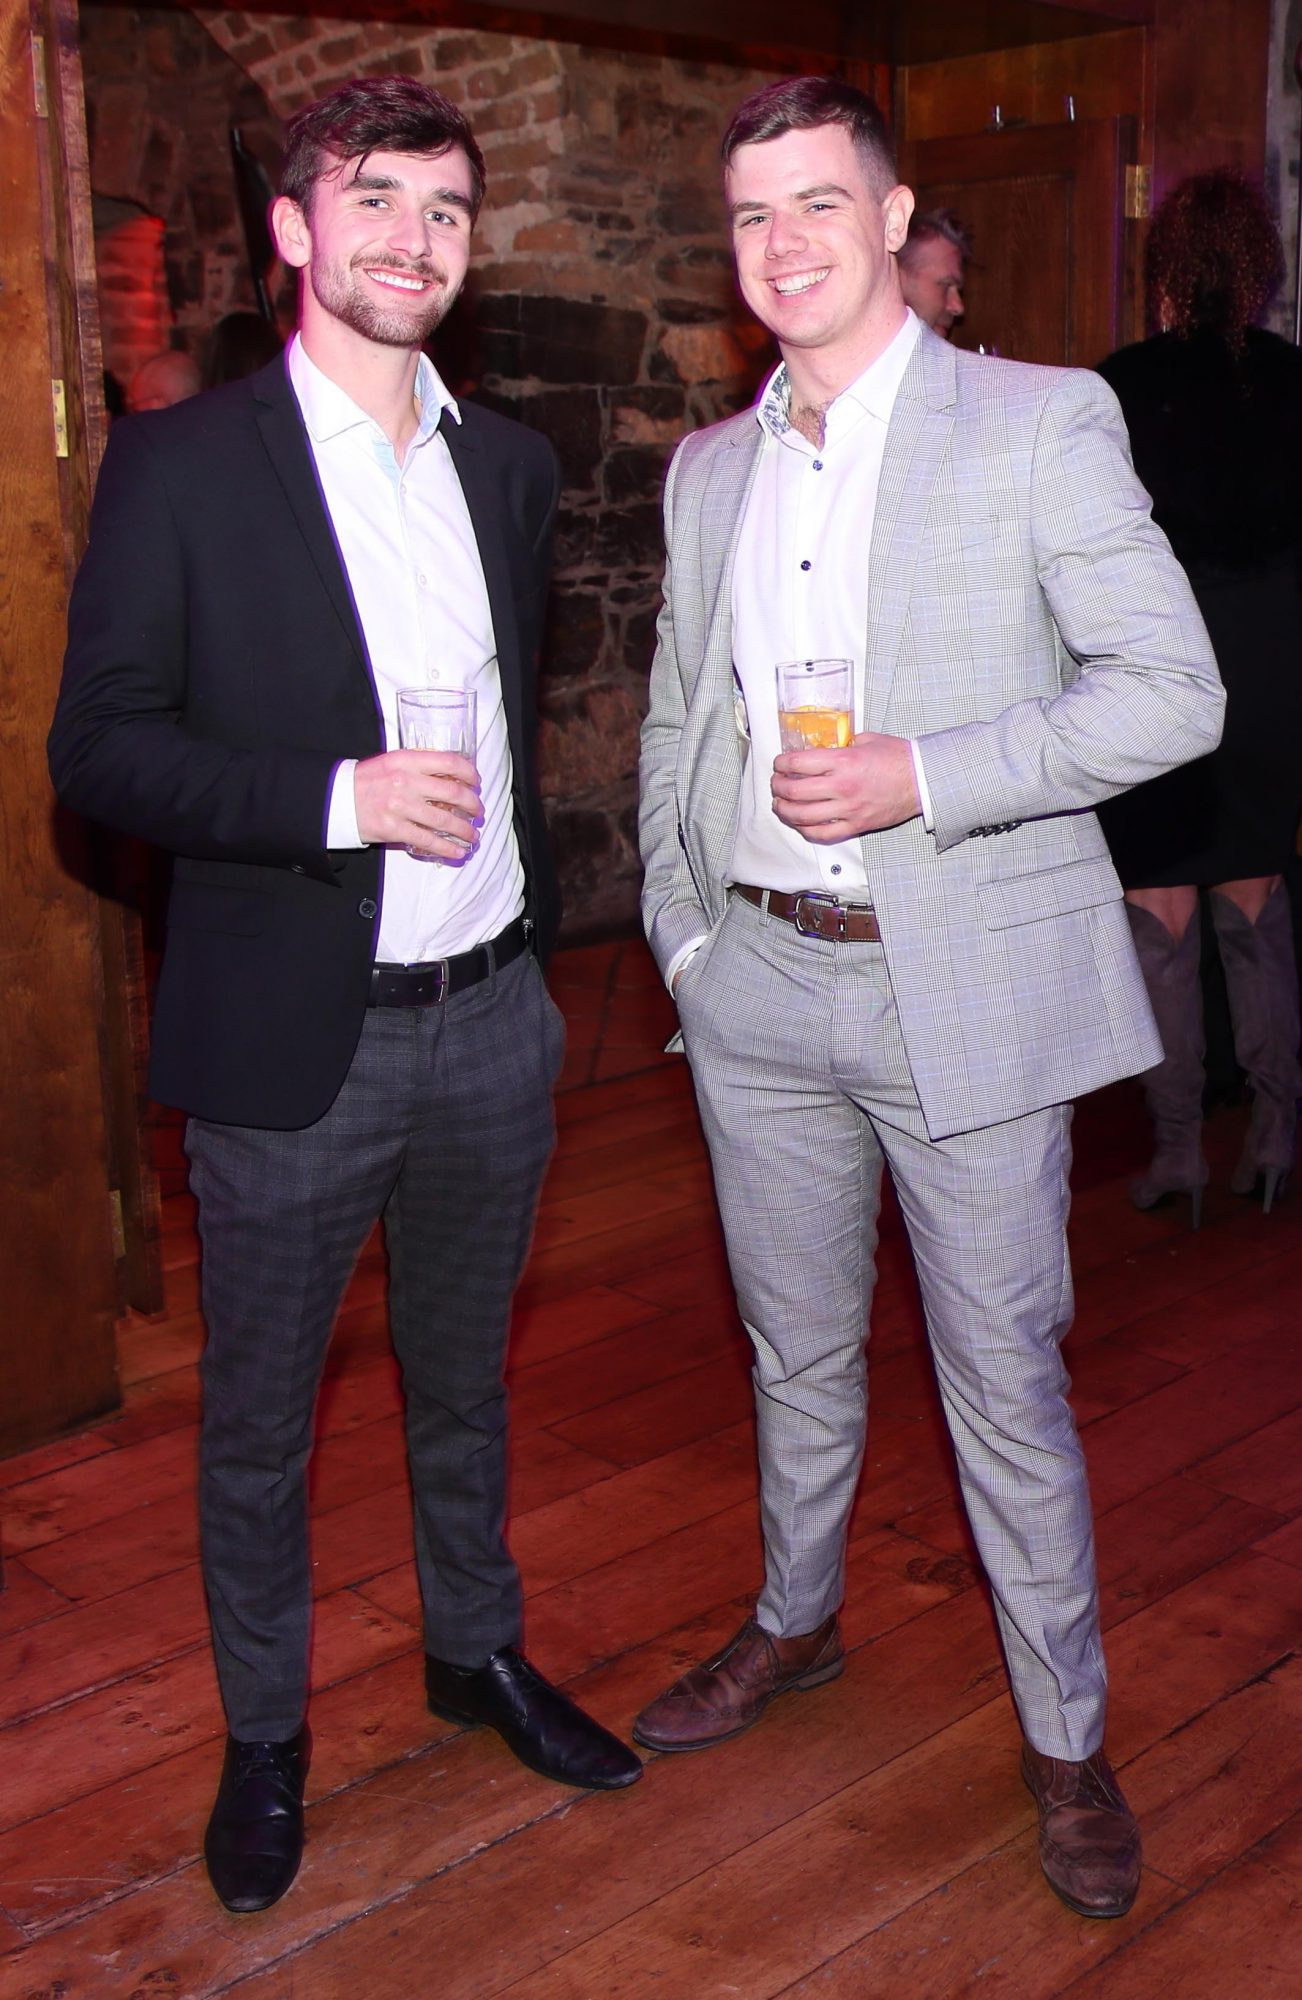 Rory Sheehan and Stephen Spillane pictured at the exclusive global launch of Wilde Irish Gin at The Cellar Bar last night. Photograph: Leon Farrell / Photocall Ireland